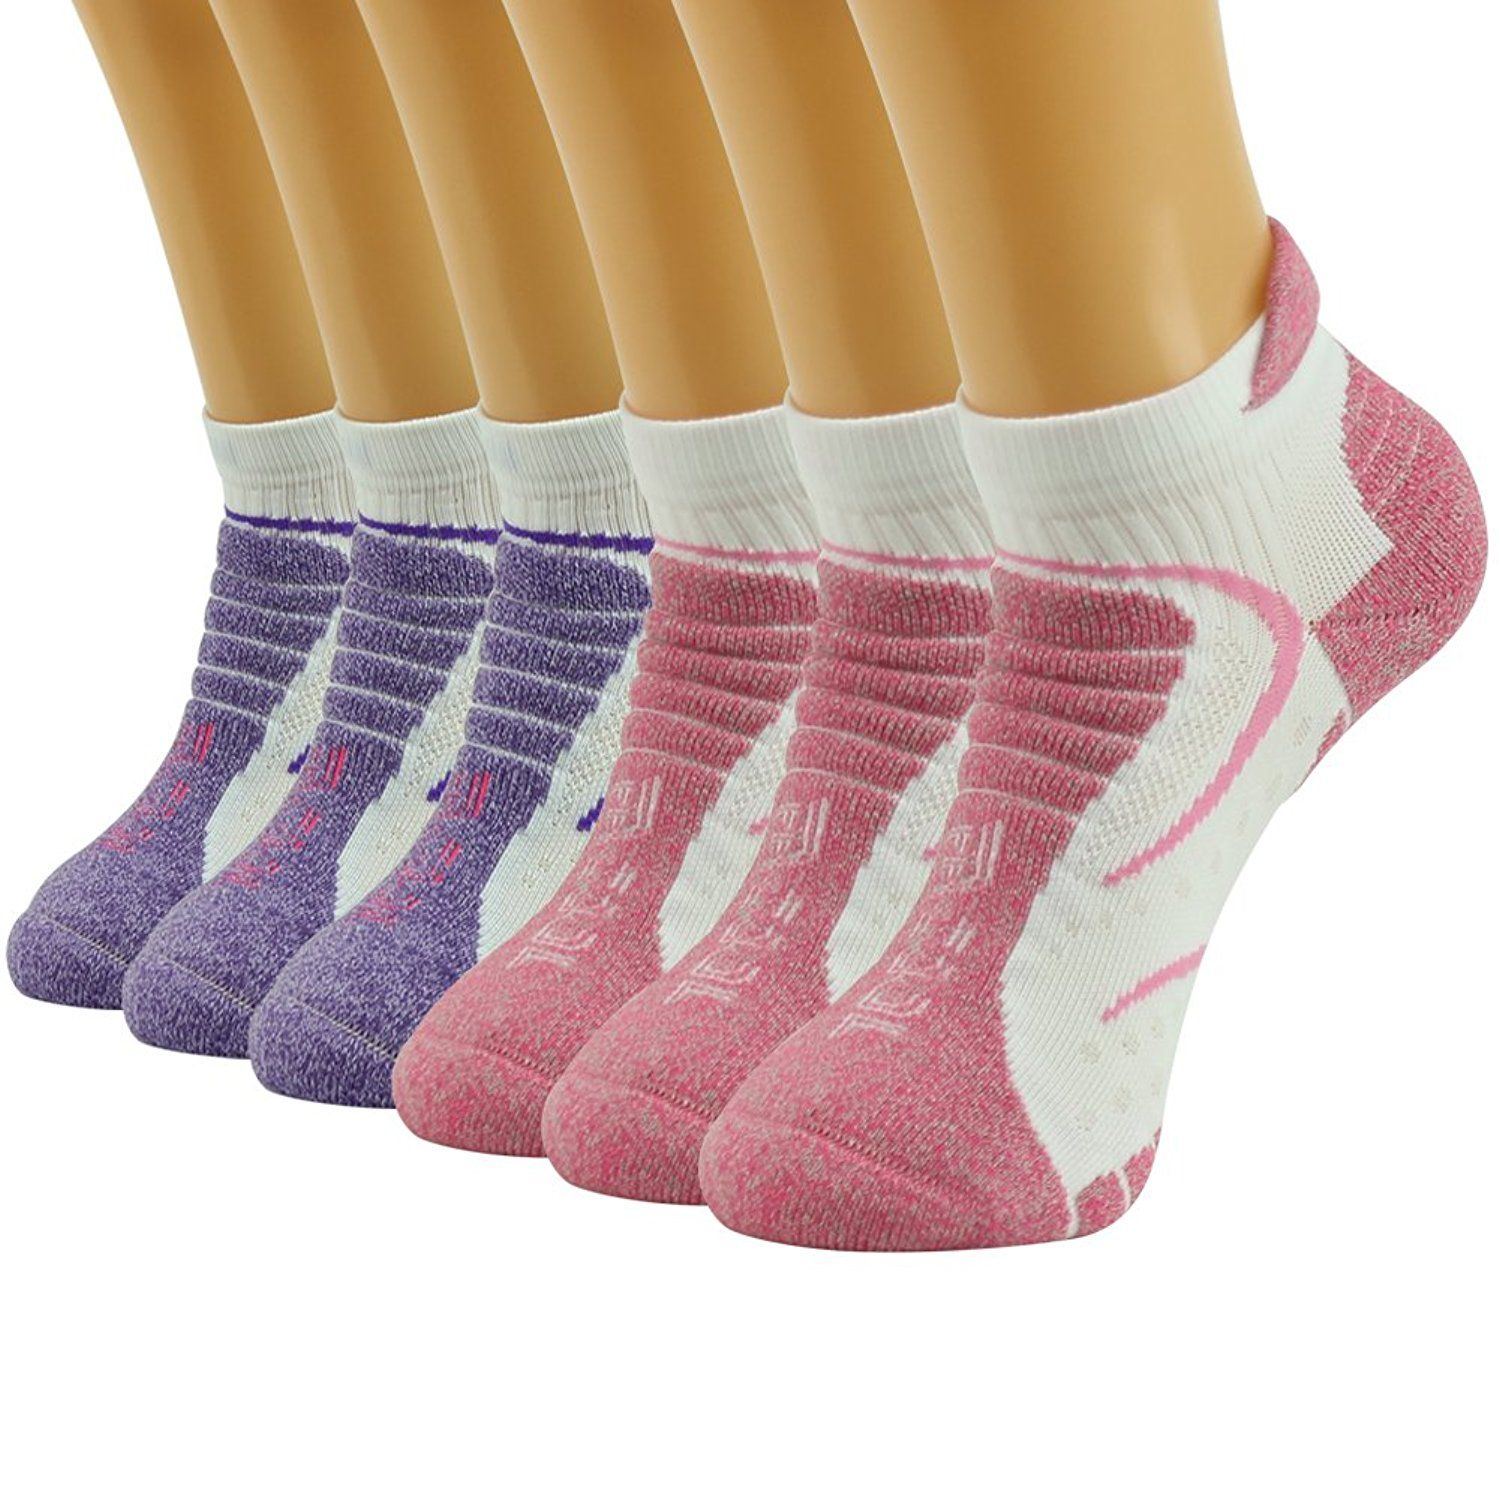 Facool Womens Moisture Wicking Athletic Cushion Hiking Camping Running Walking Ankle Socks 6 Pairs